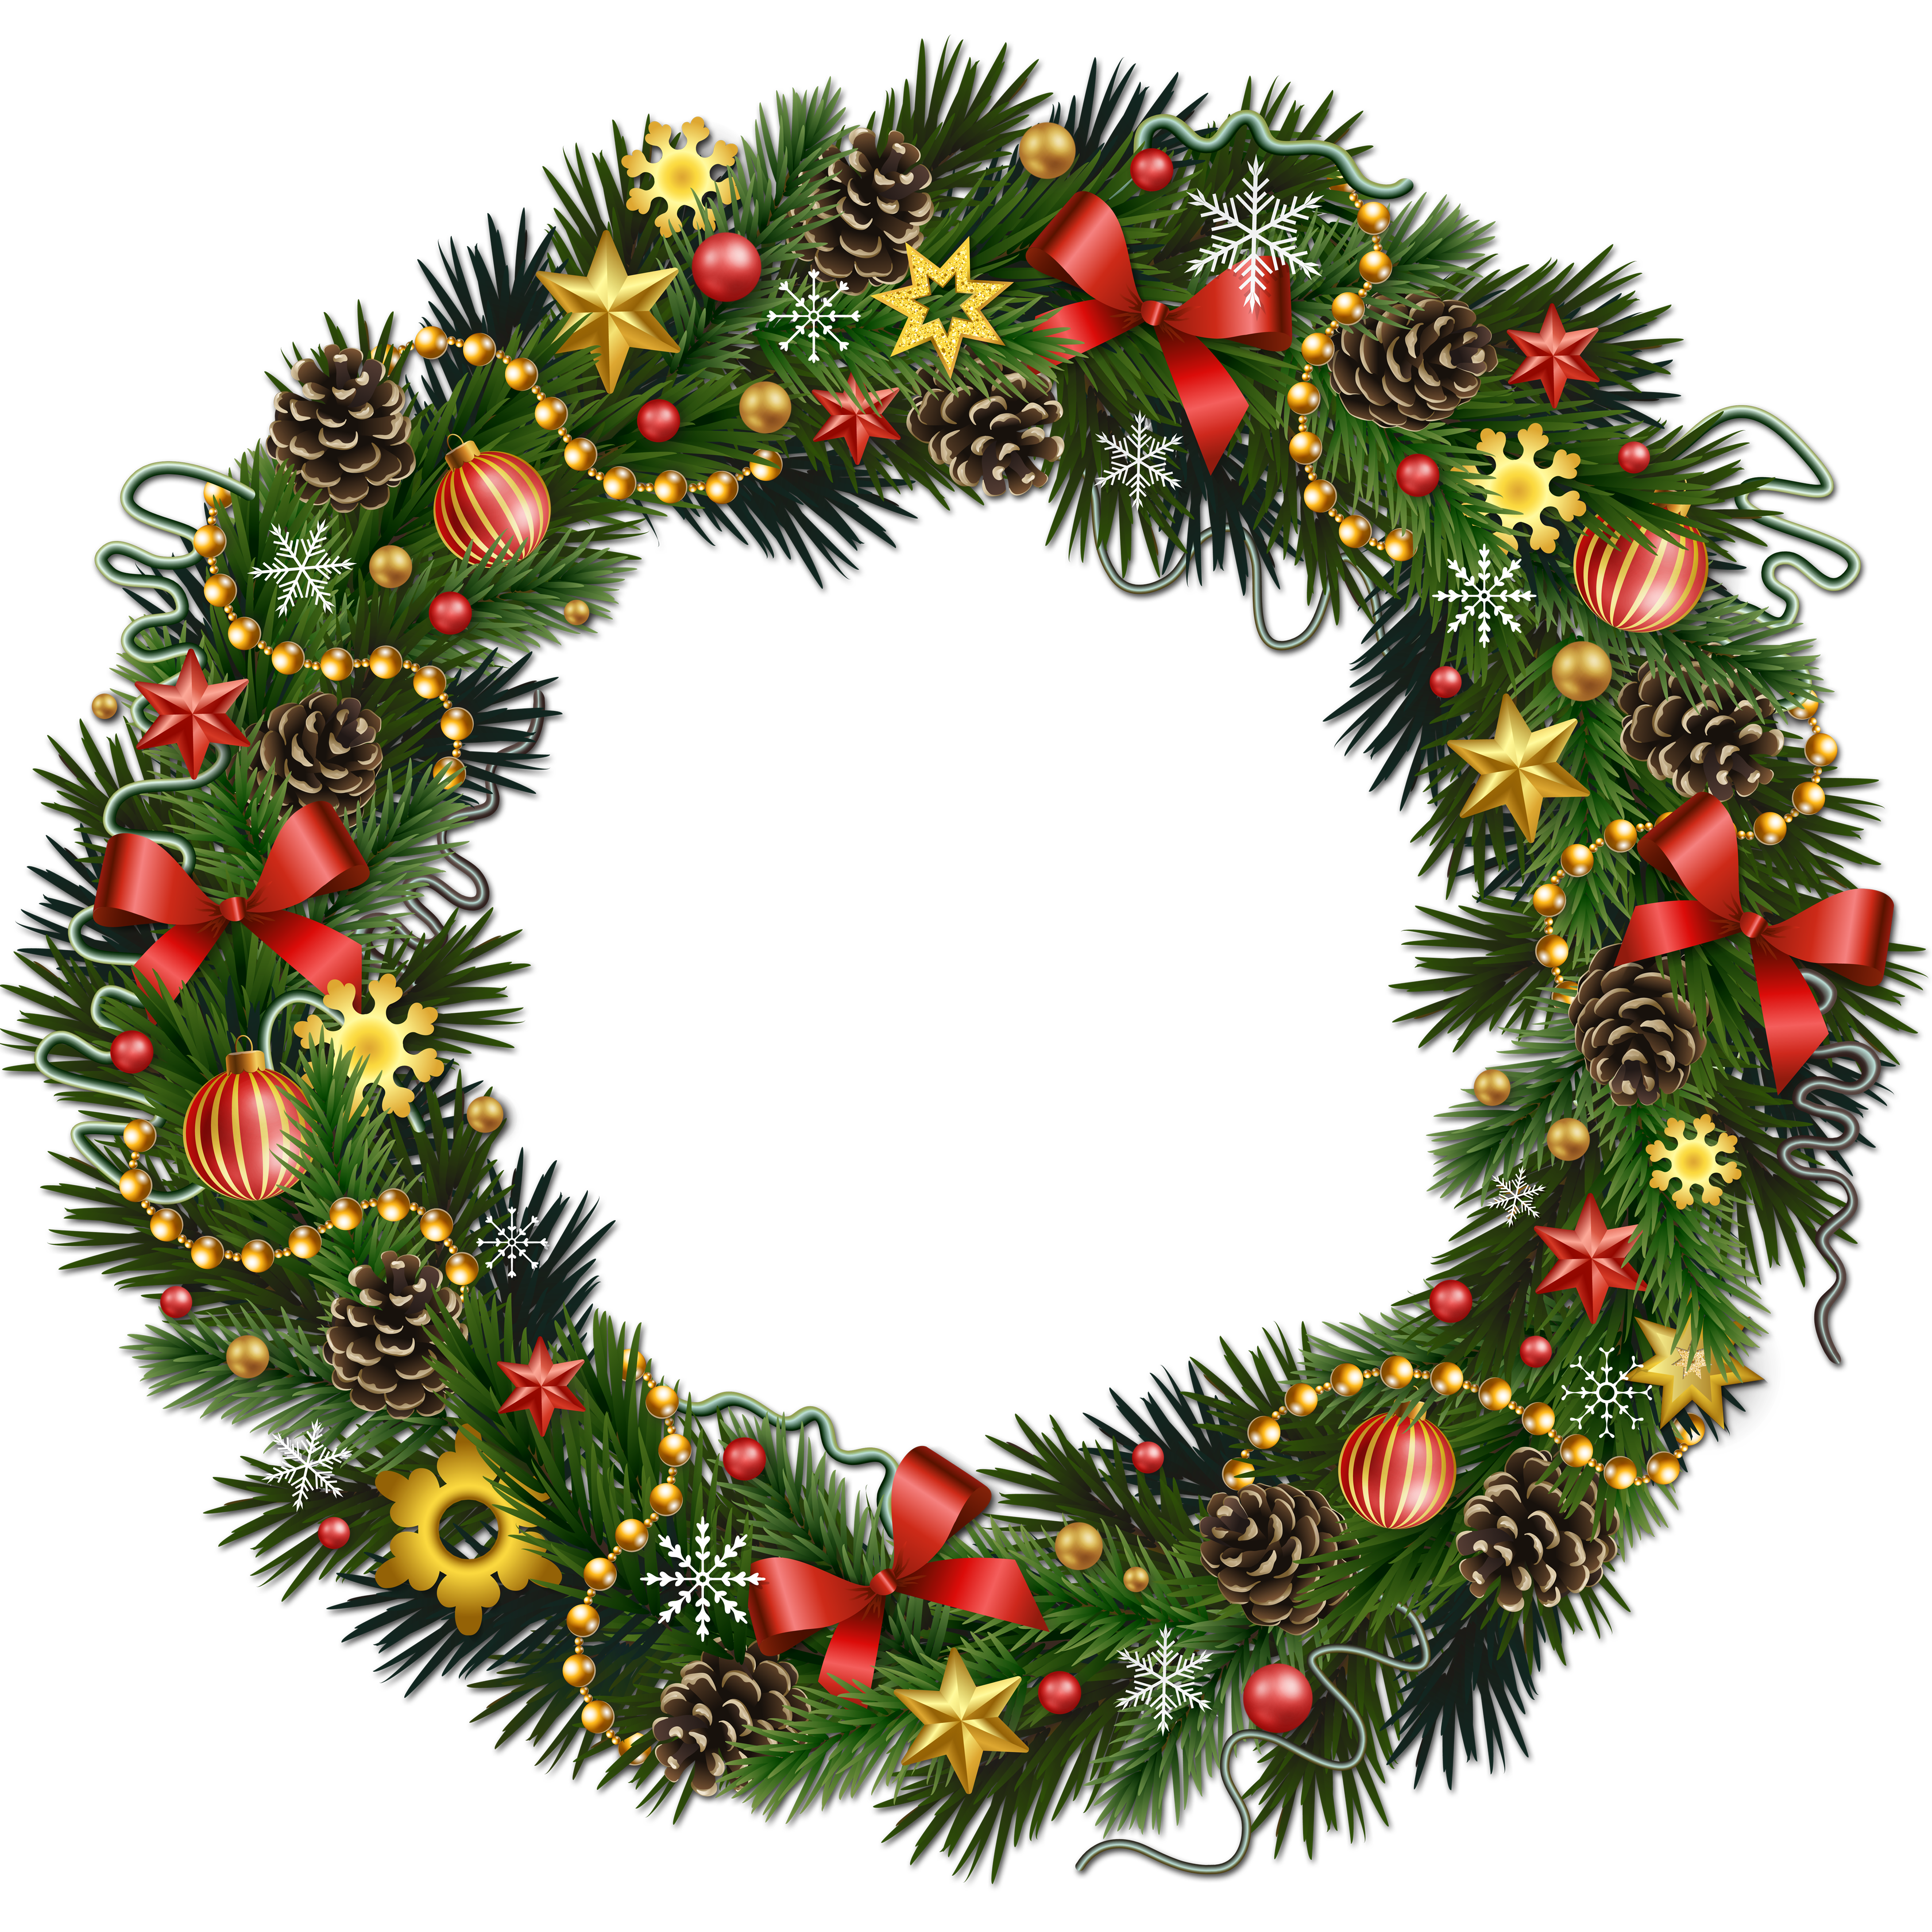 Wreath border png. Transparent christmas pinecone with